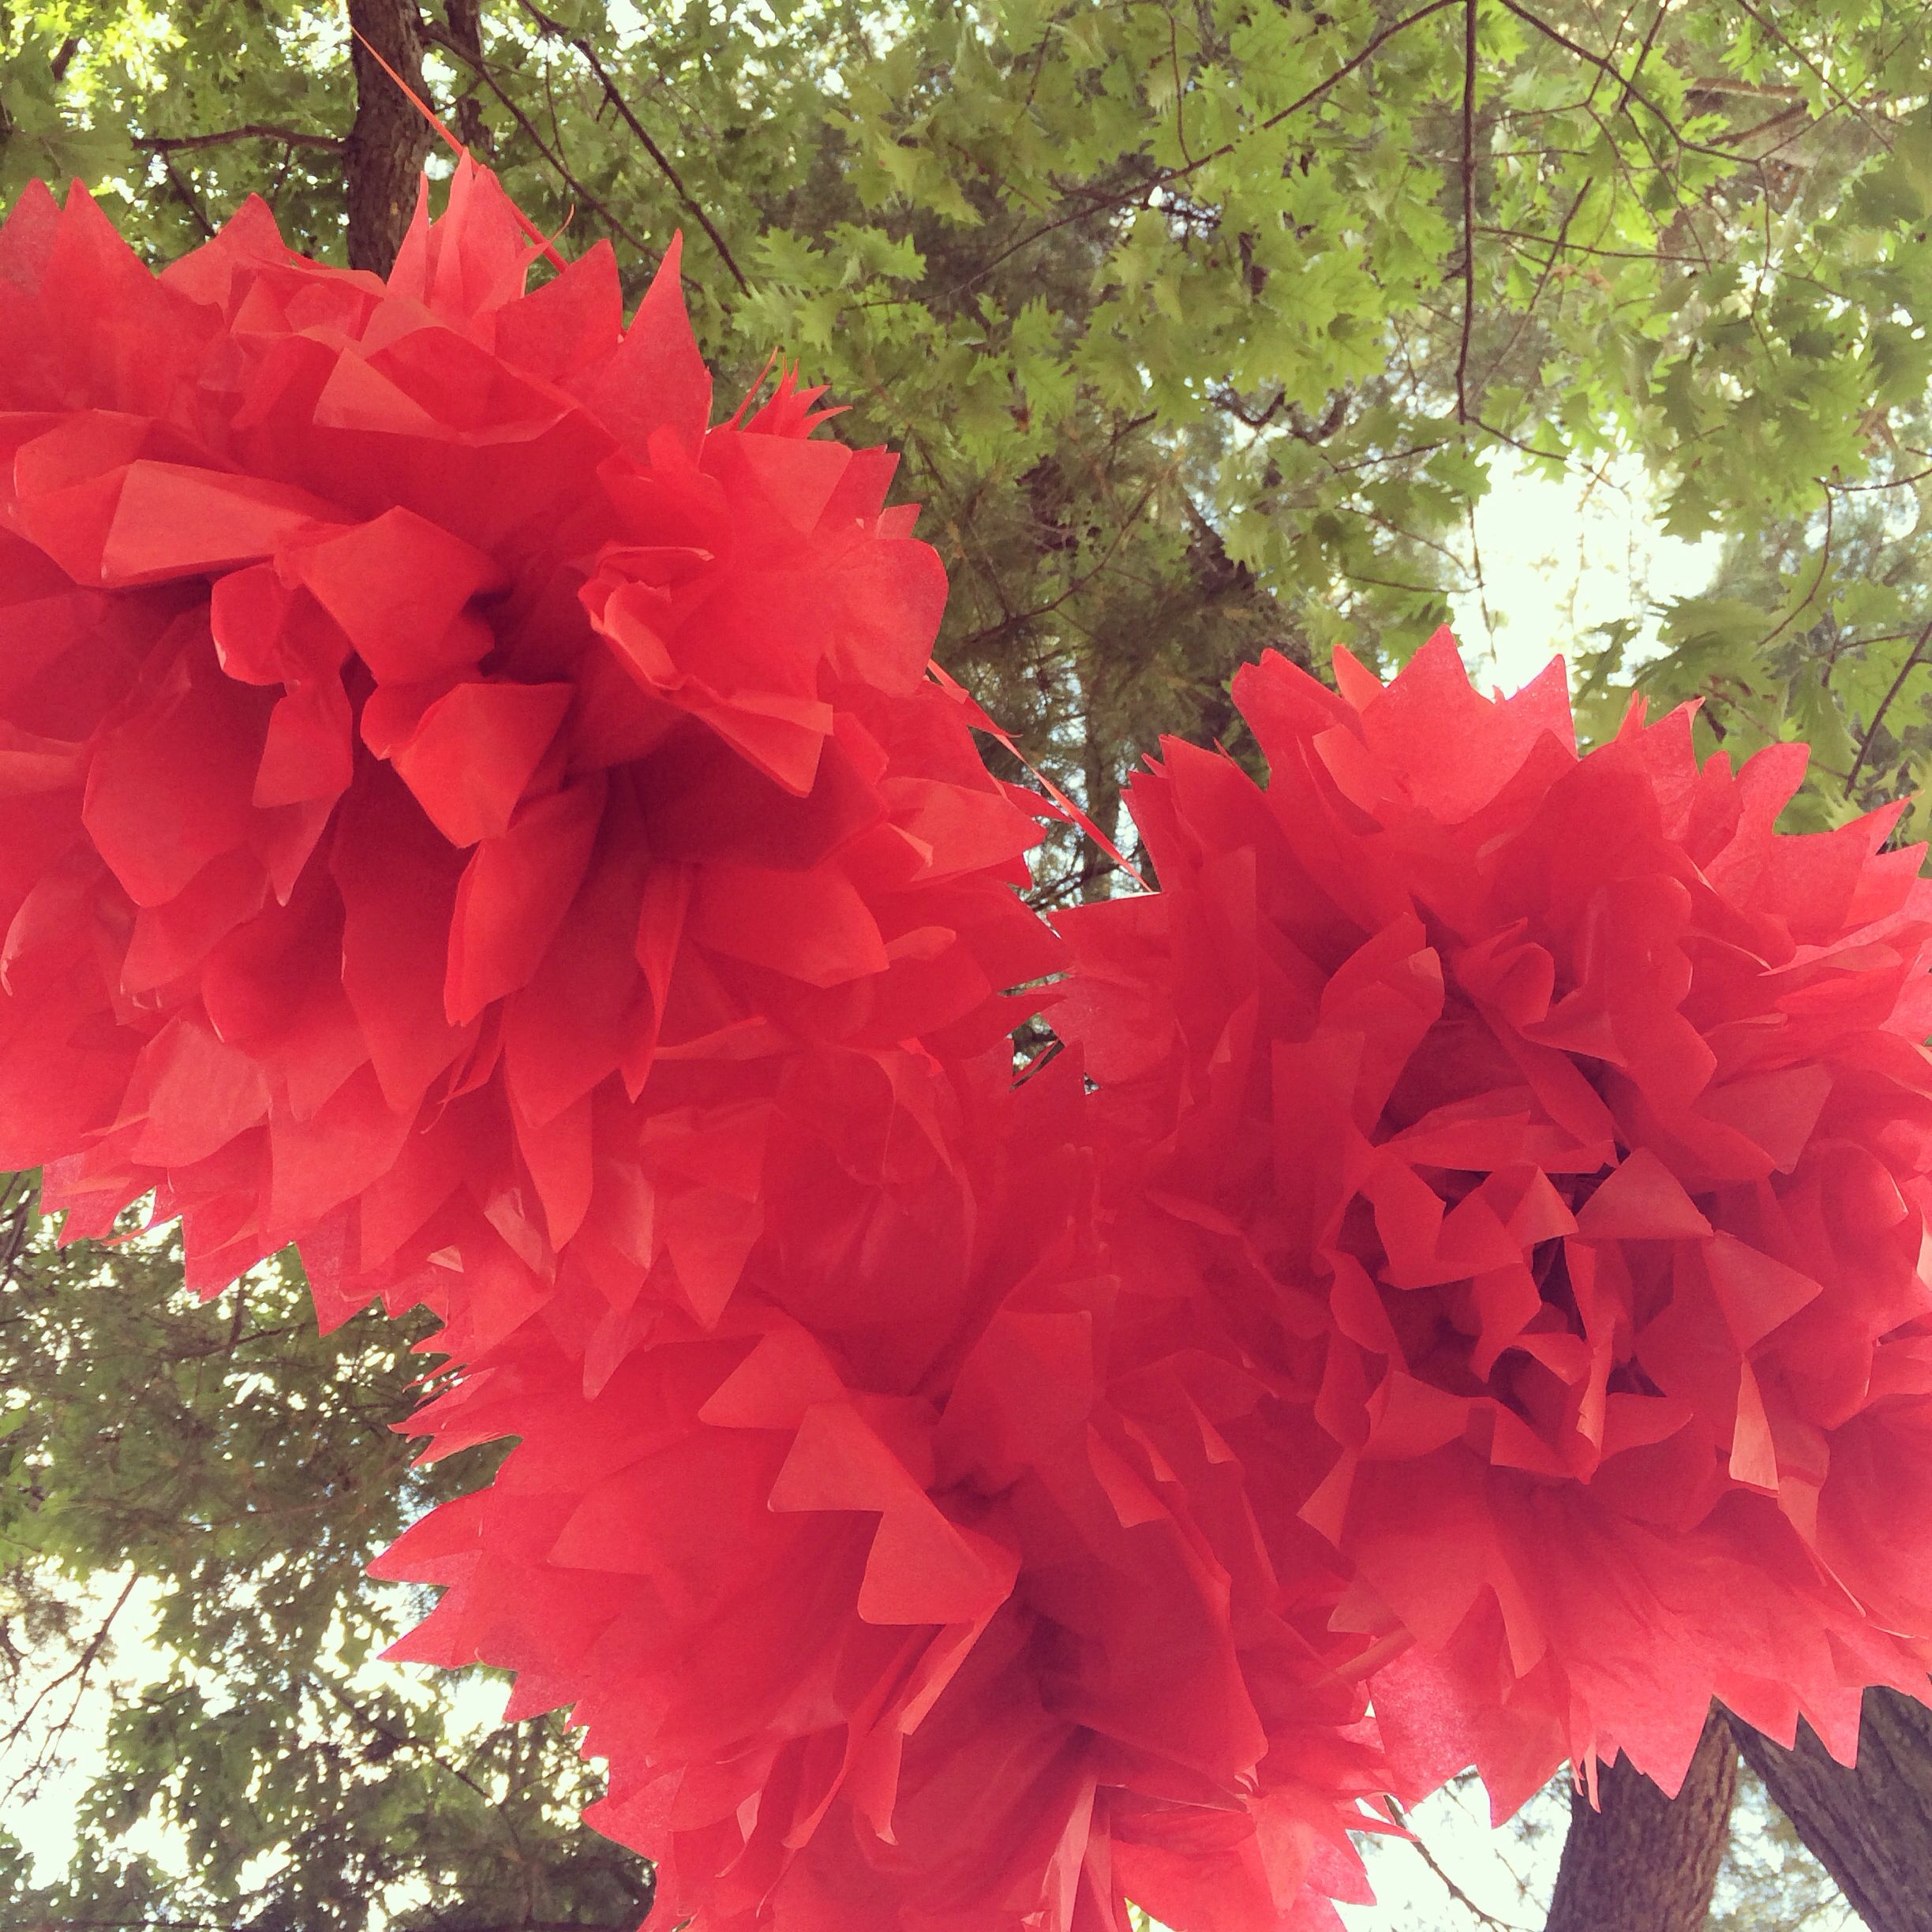 Paper flowers instead of balloons